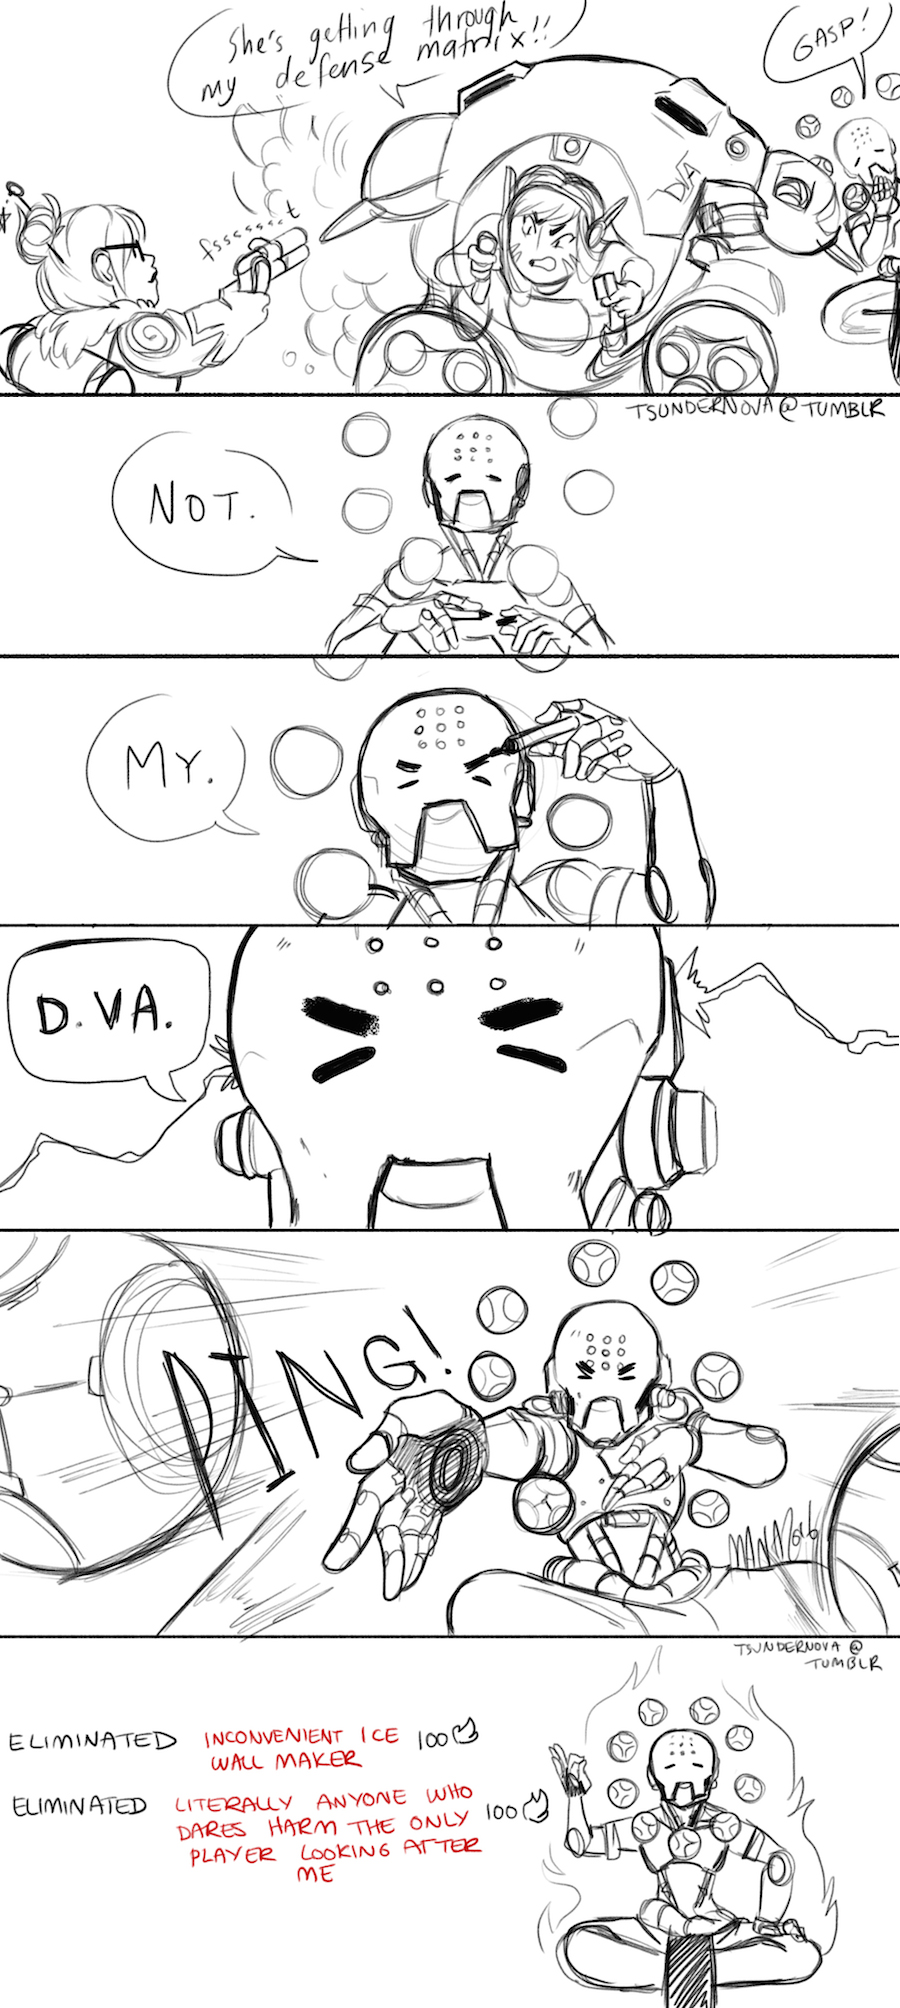 how supports are with player who protect them